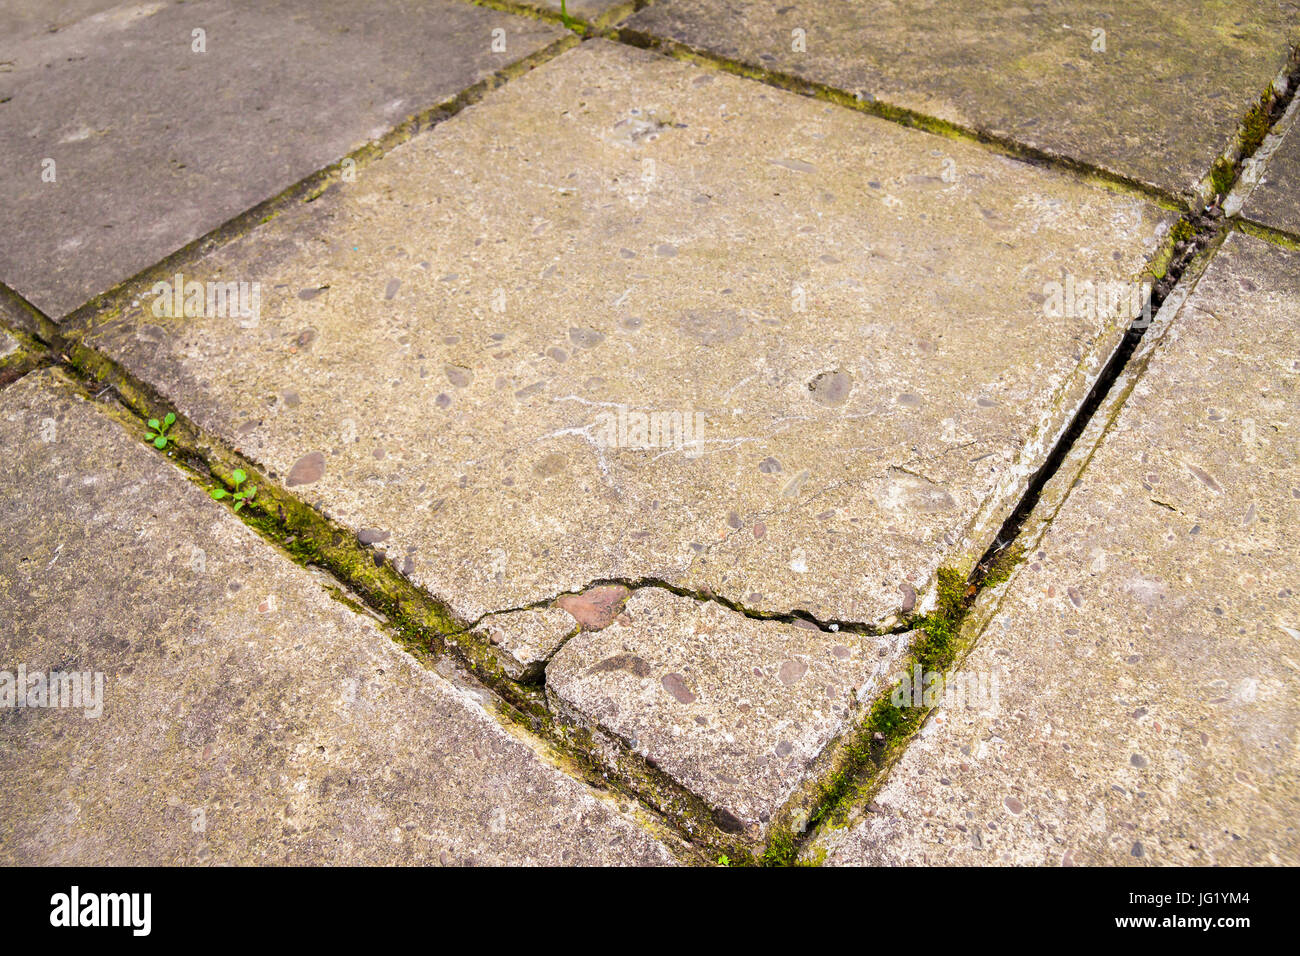 Old and broken cracked concrete floor tiles stock photo 147561124 old and broken cracked concrete floor tiles dailygadgetfo Choice Image